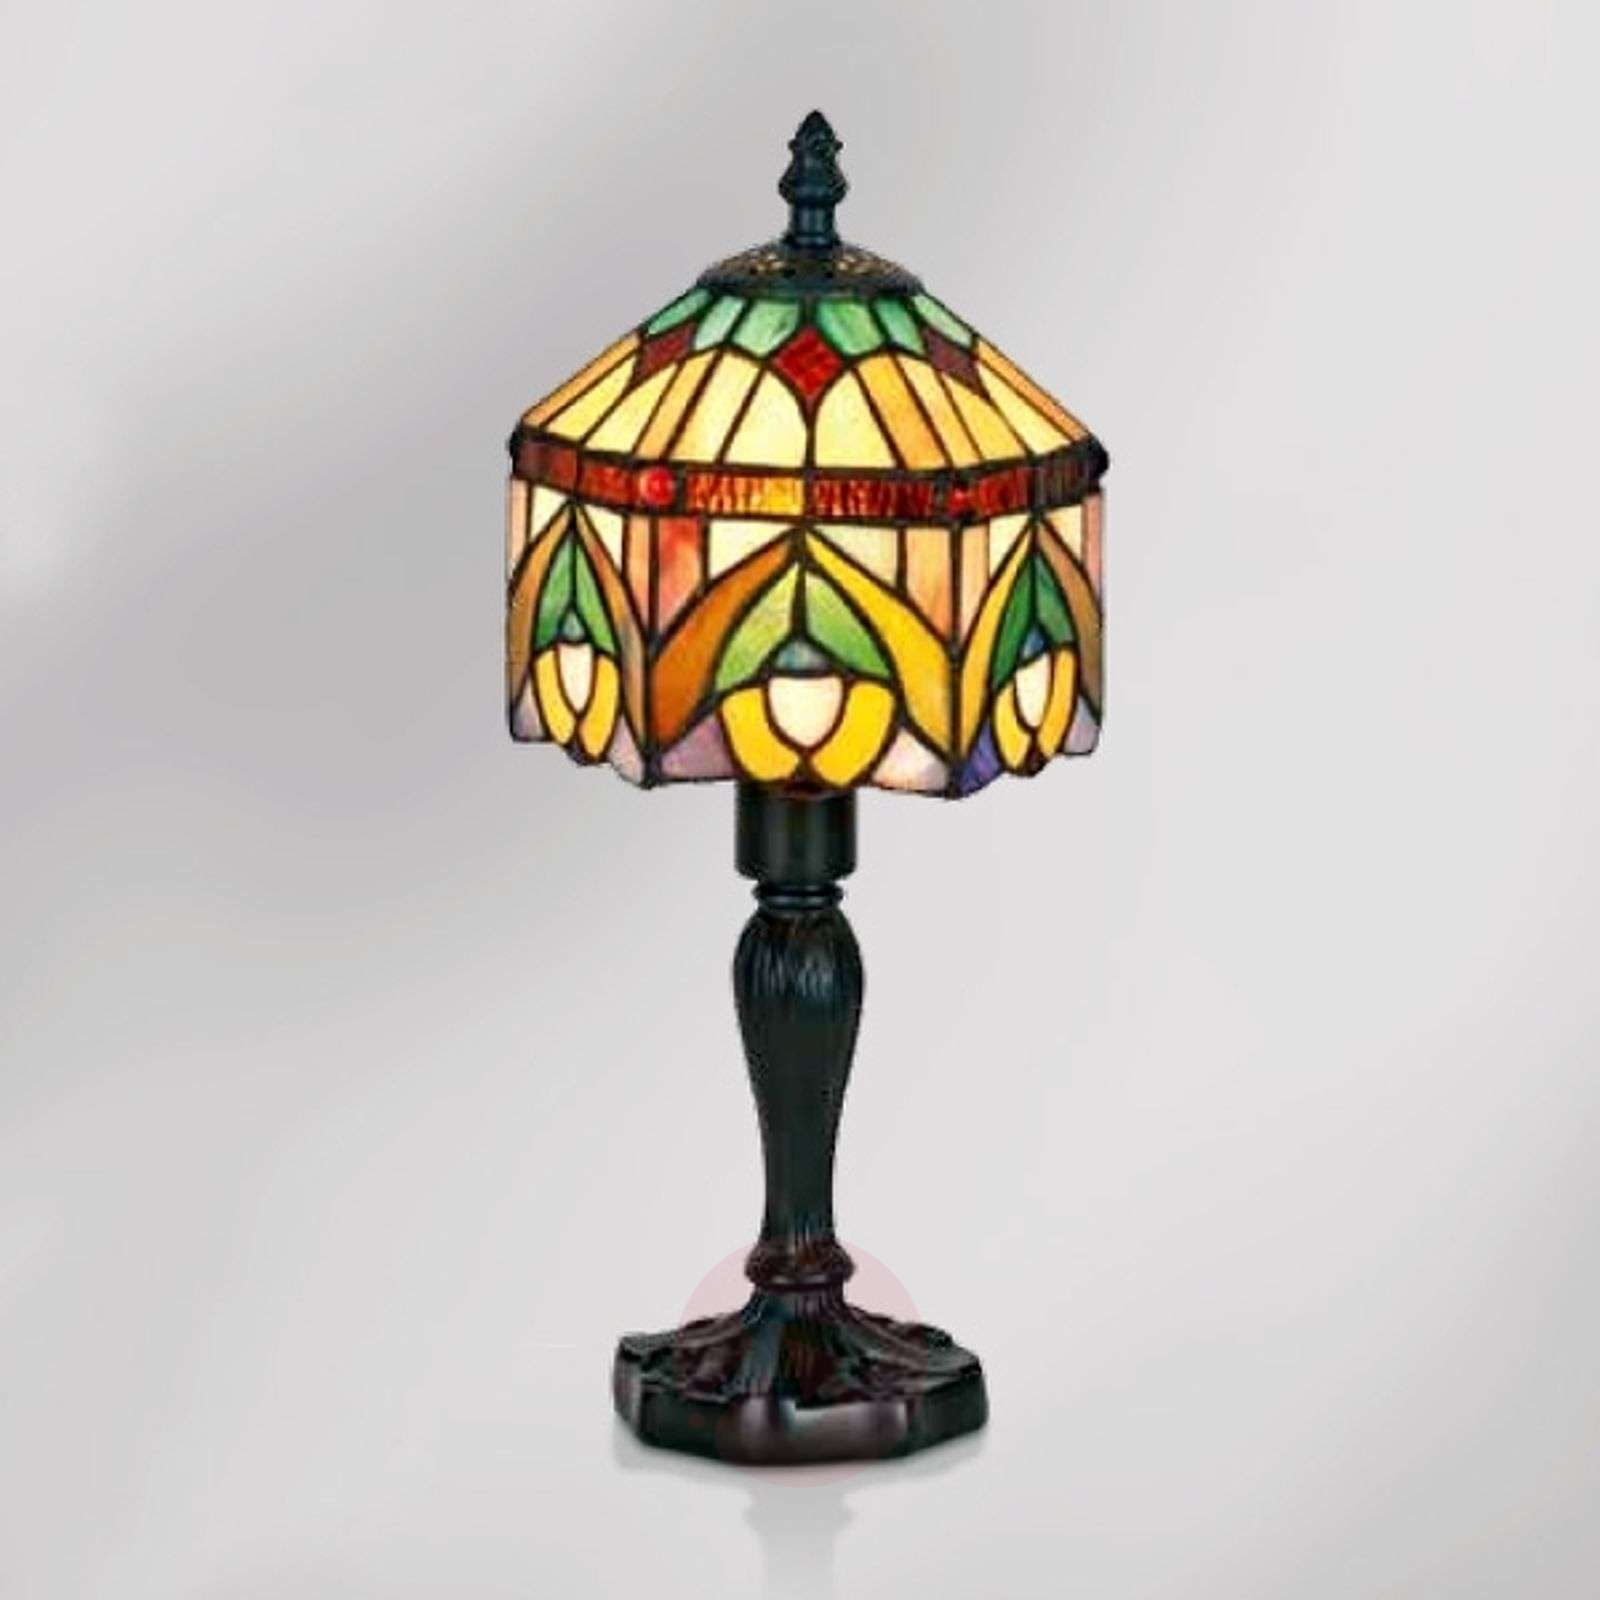 Decorative table lamp Jamilia in Tiffany style-1032267-01